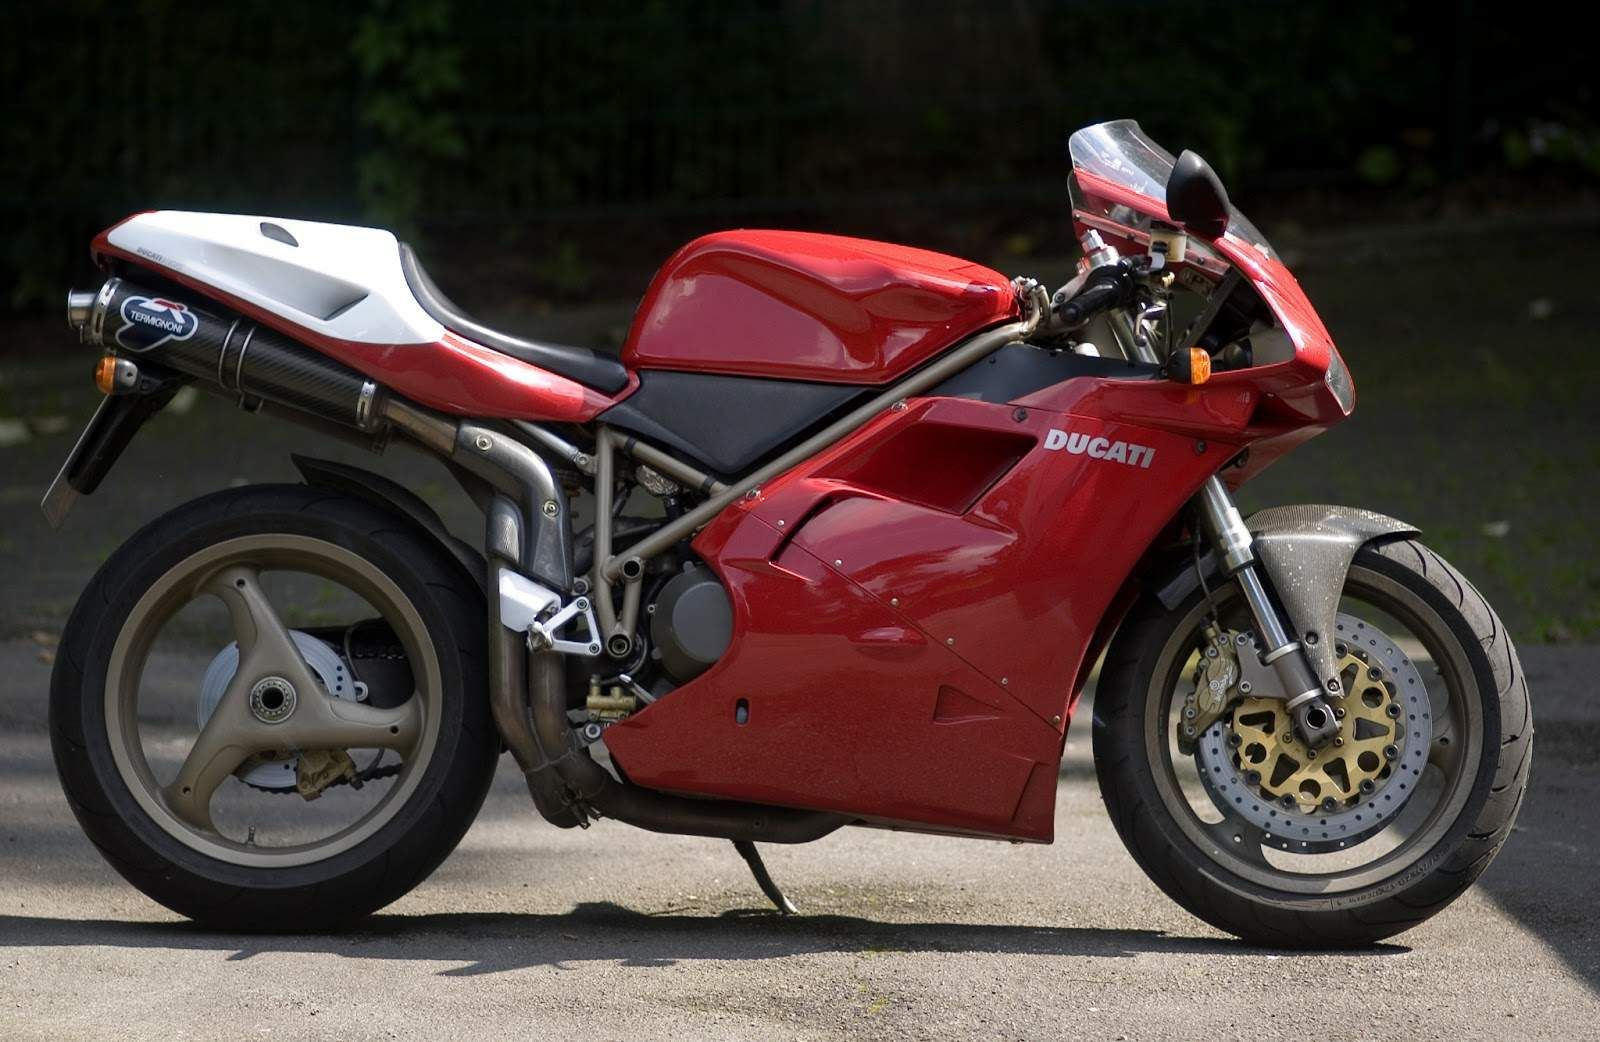 The 1999 My Ducati 916sps Has Standard Features Such As An Ohlins